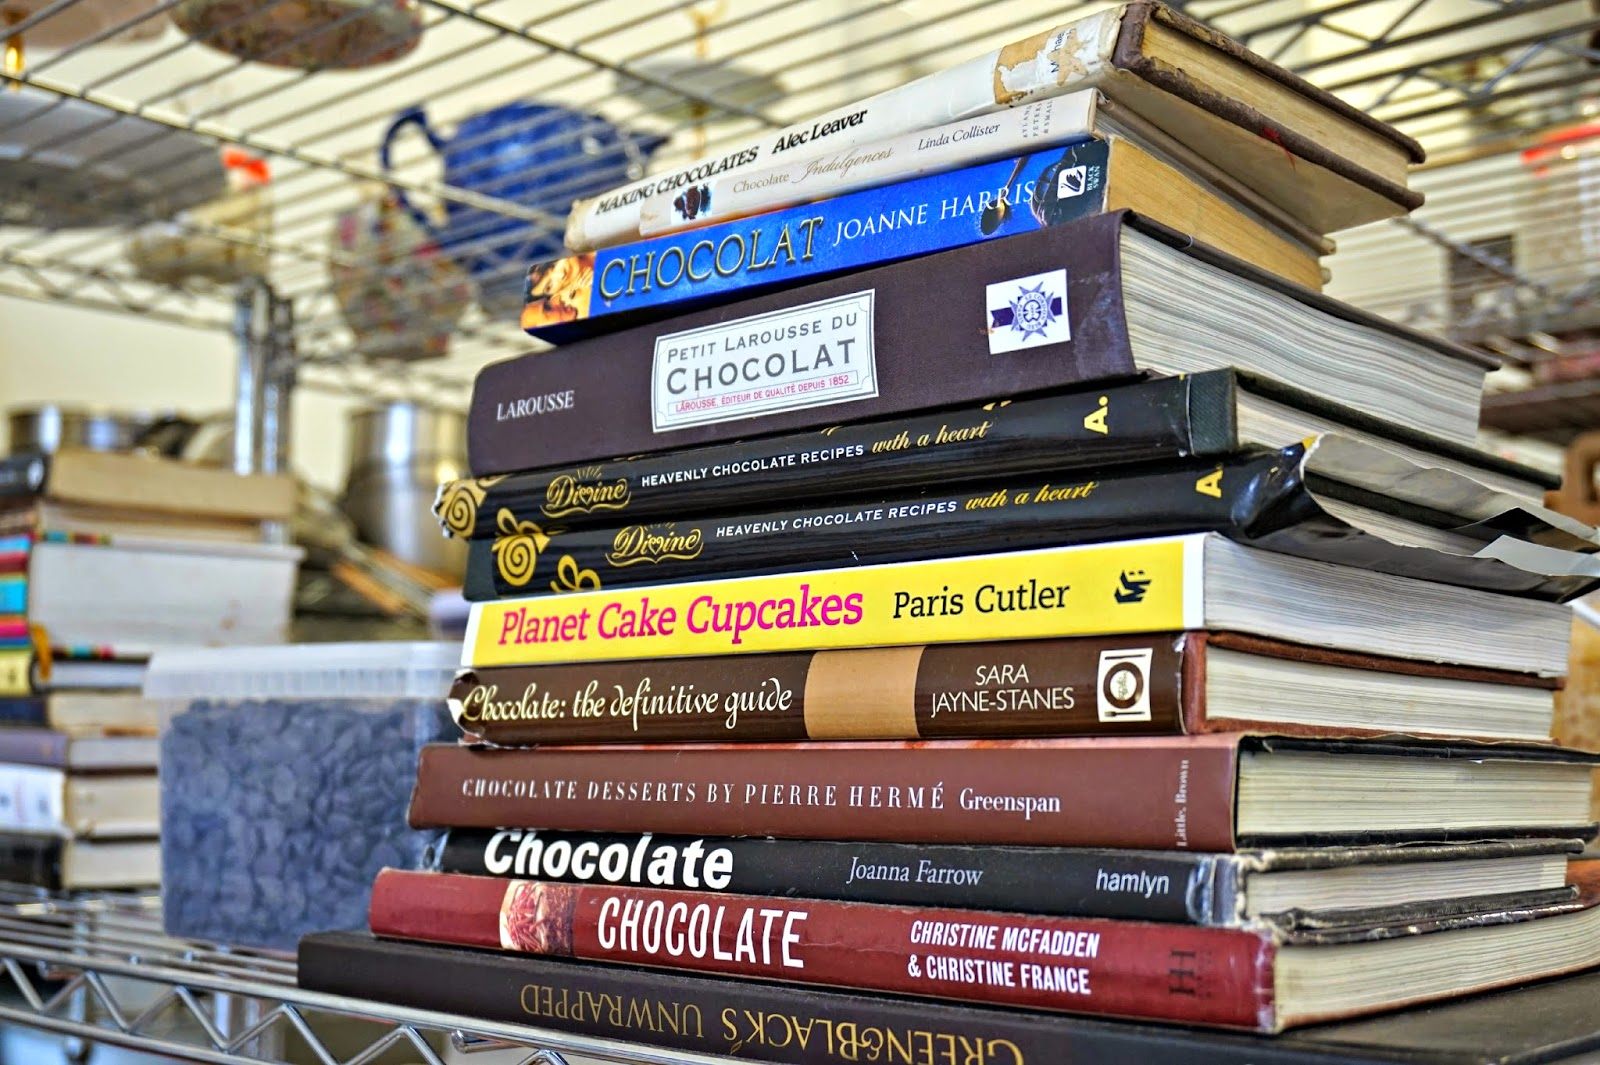 Chocolate recipe books